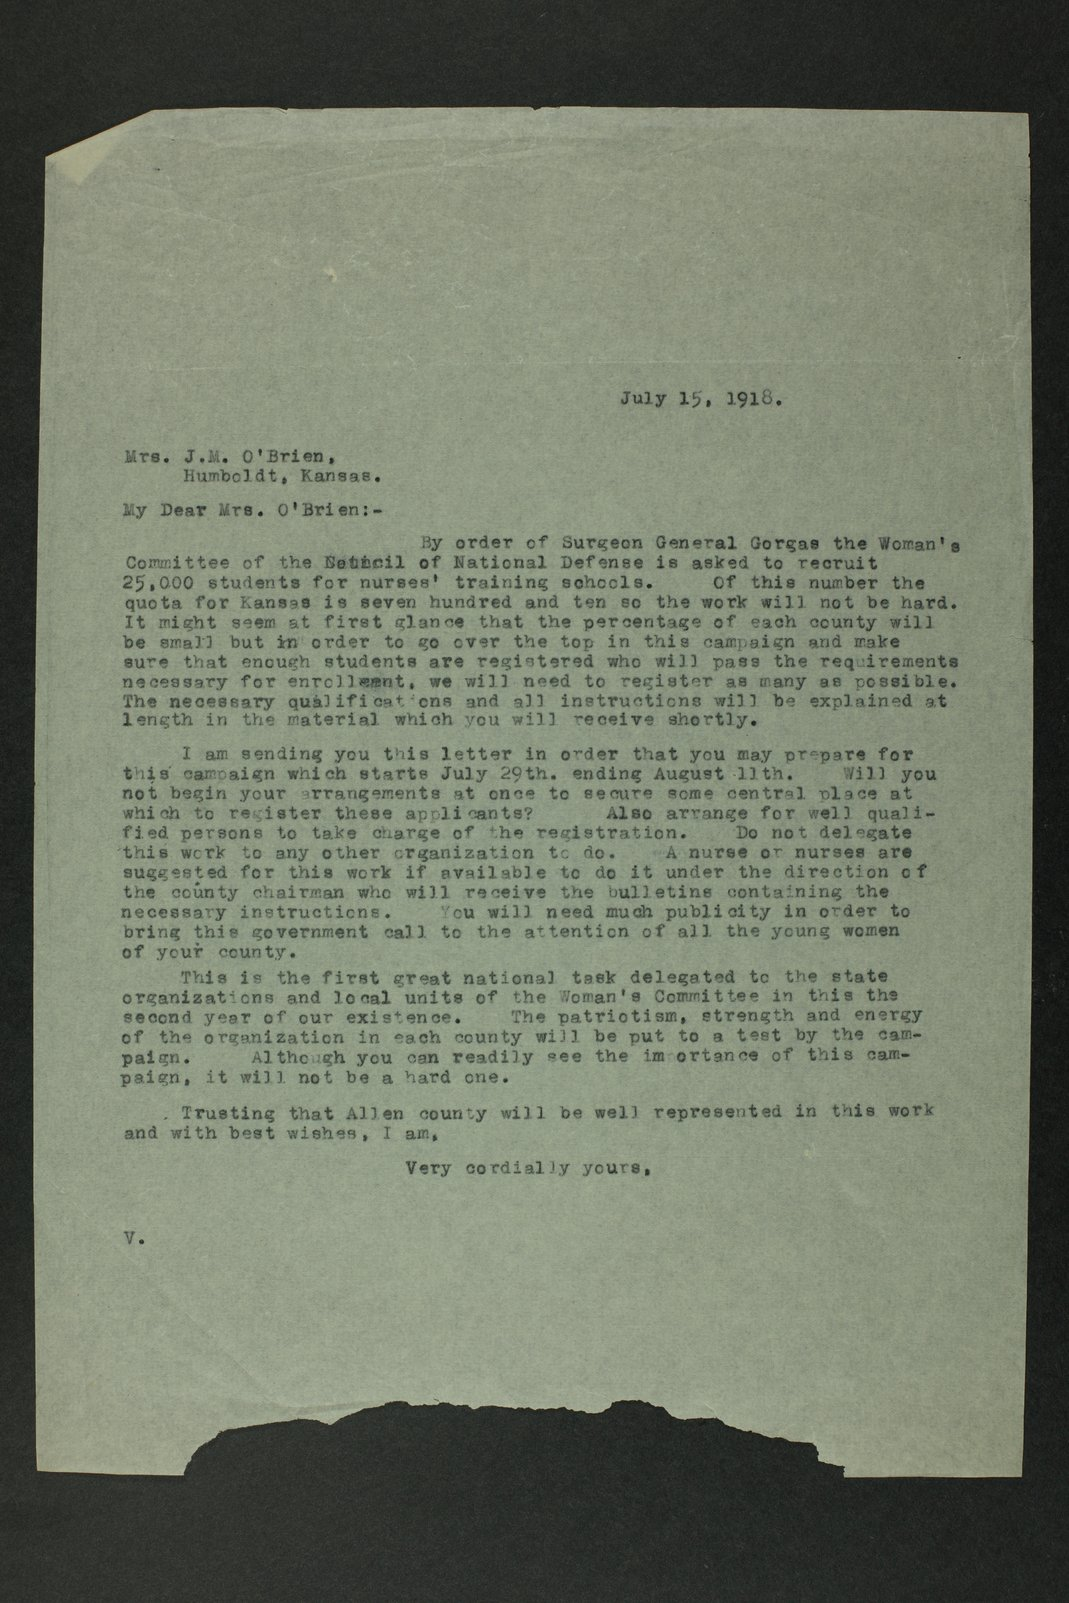 Council of National Defense Woman's Committee correspondence - 1  [Allen County]